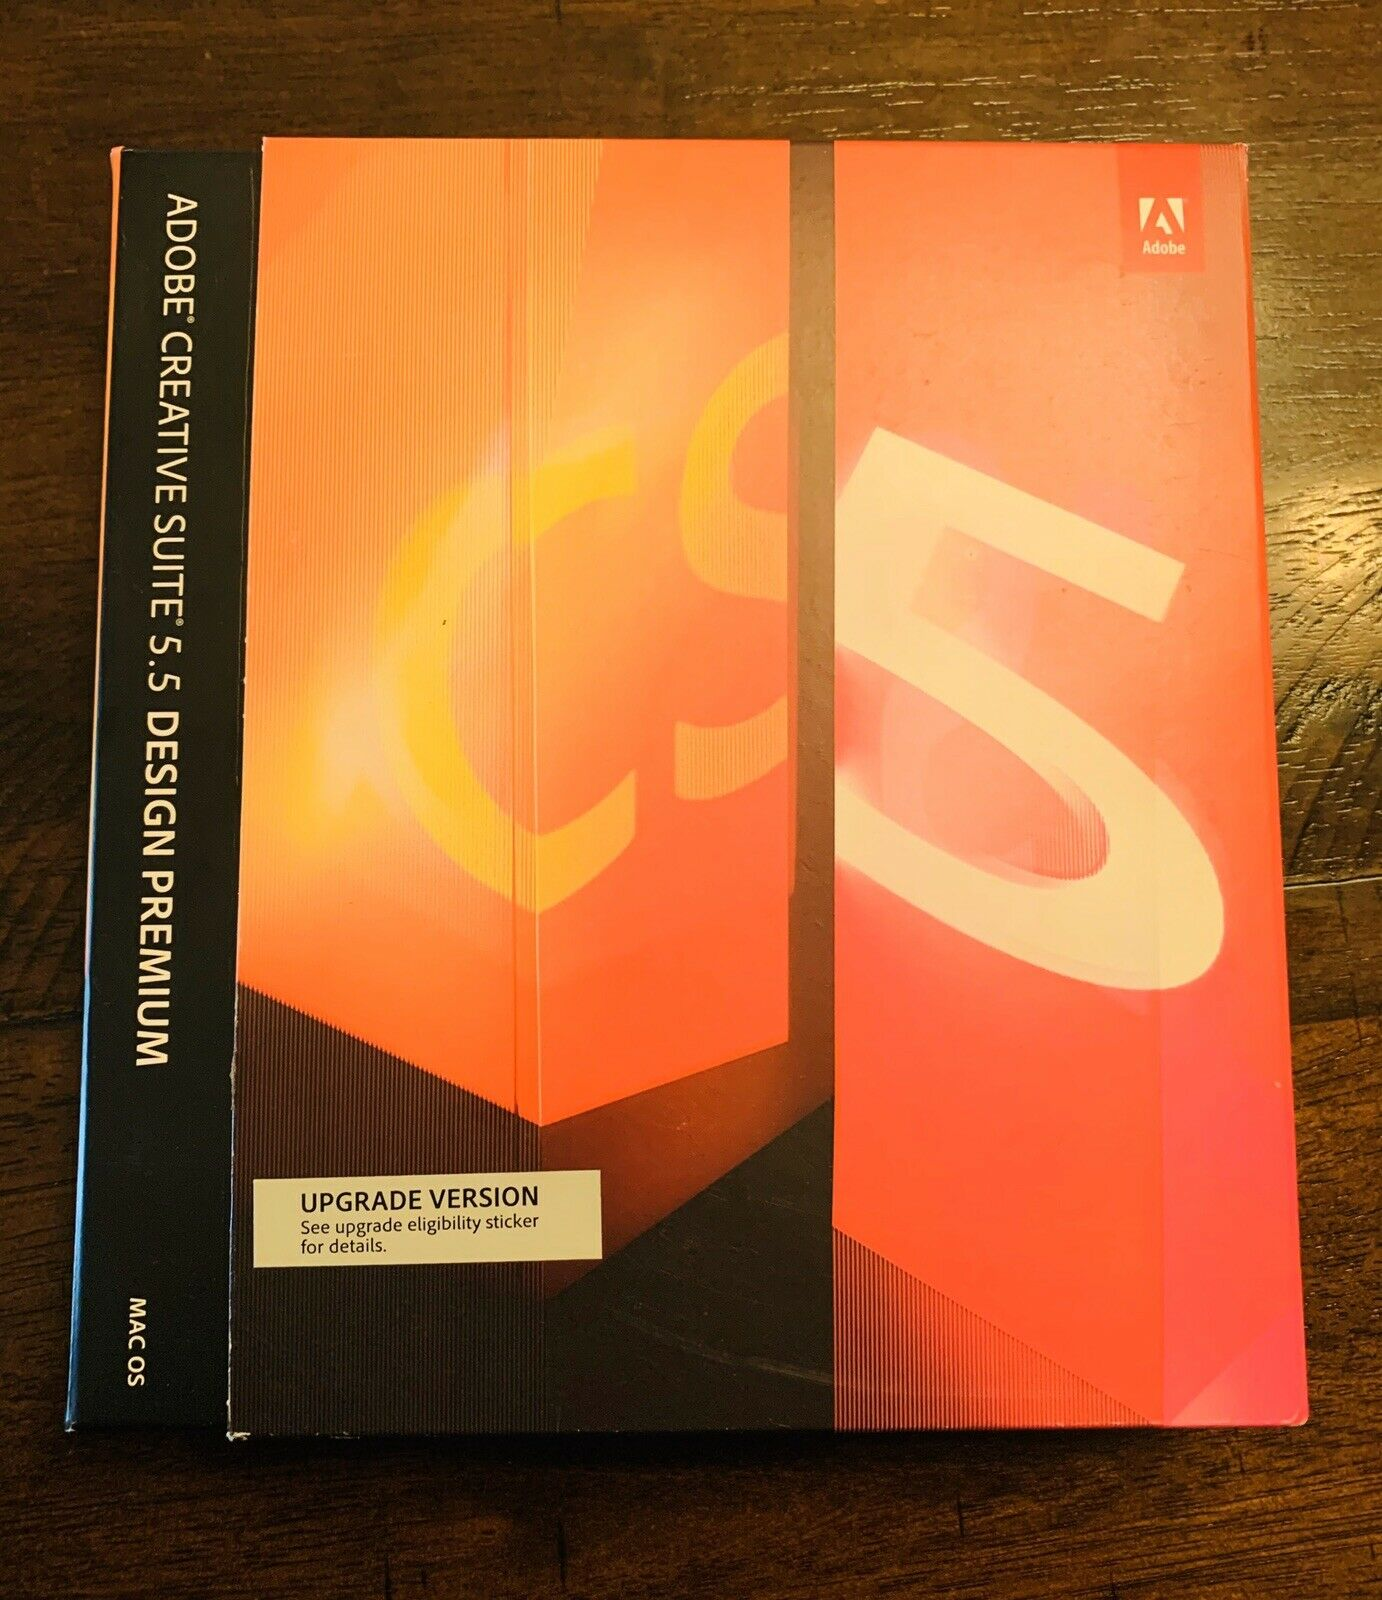 Adobe Creative Suite 5 5 Design Premium Versions Produkt Upgradepaket For Sale Online Ebay